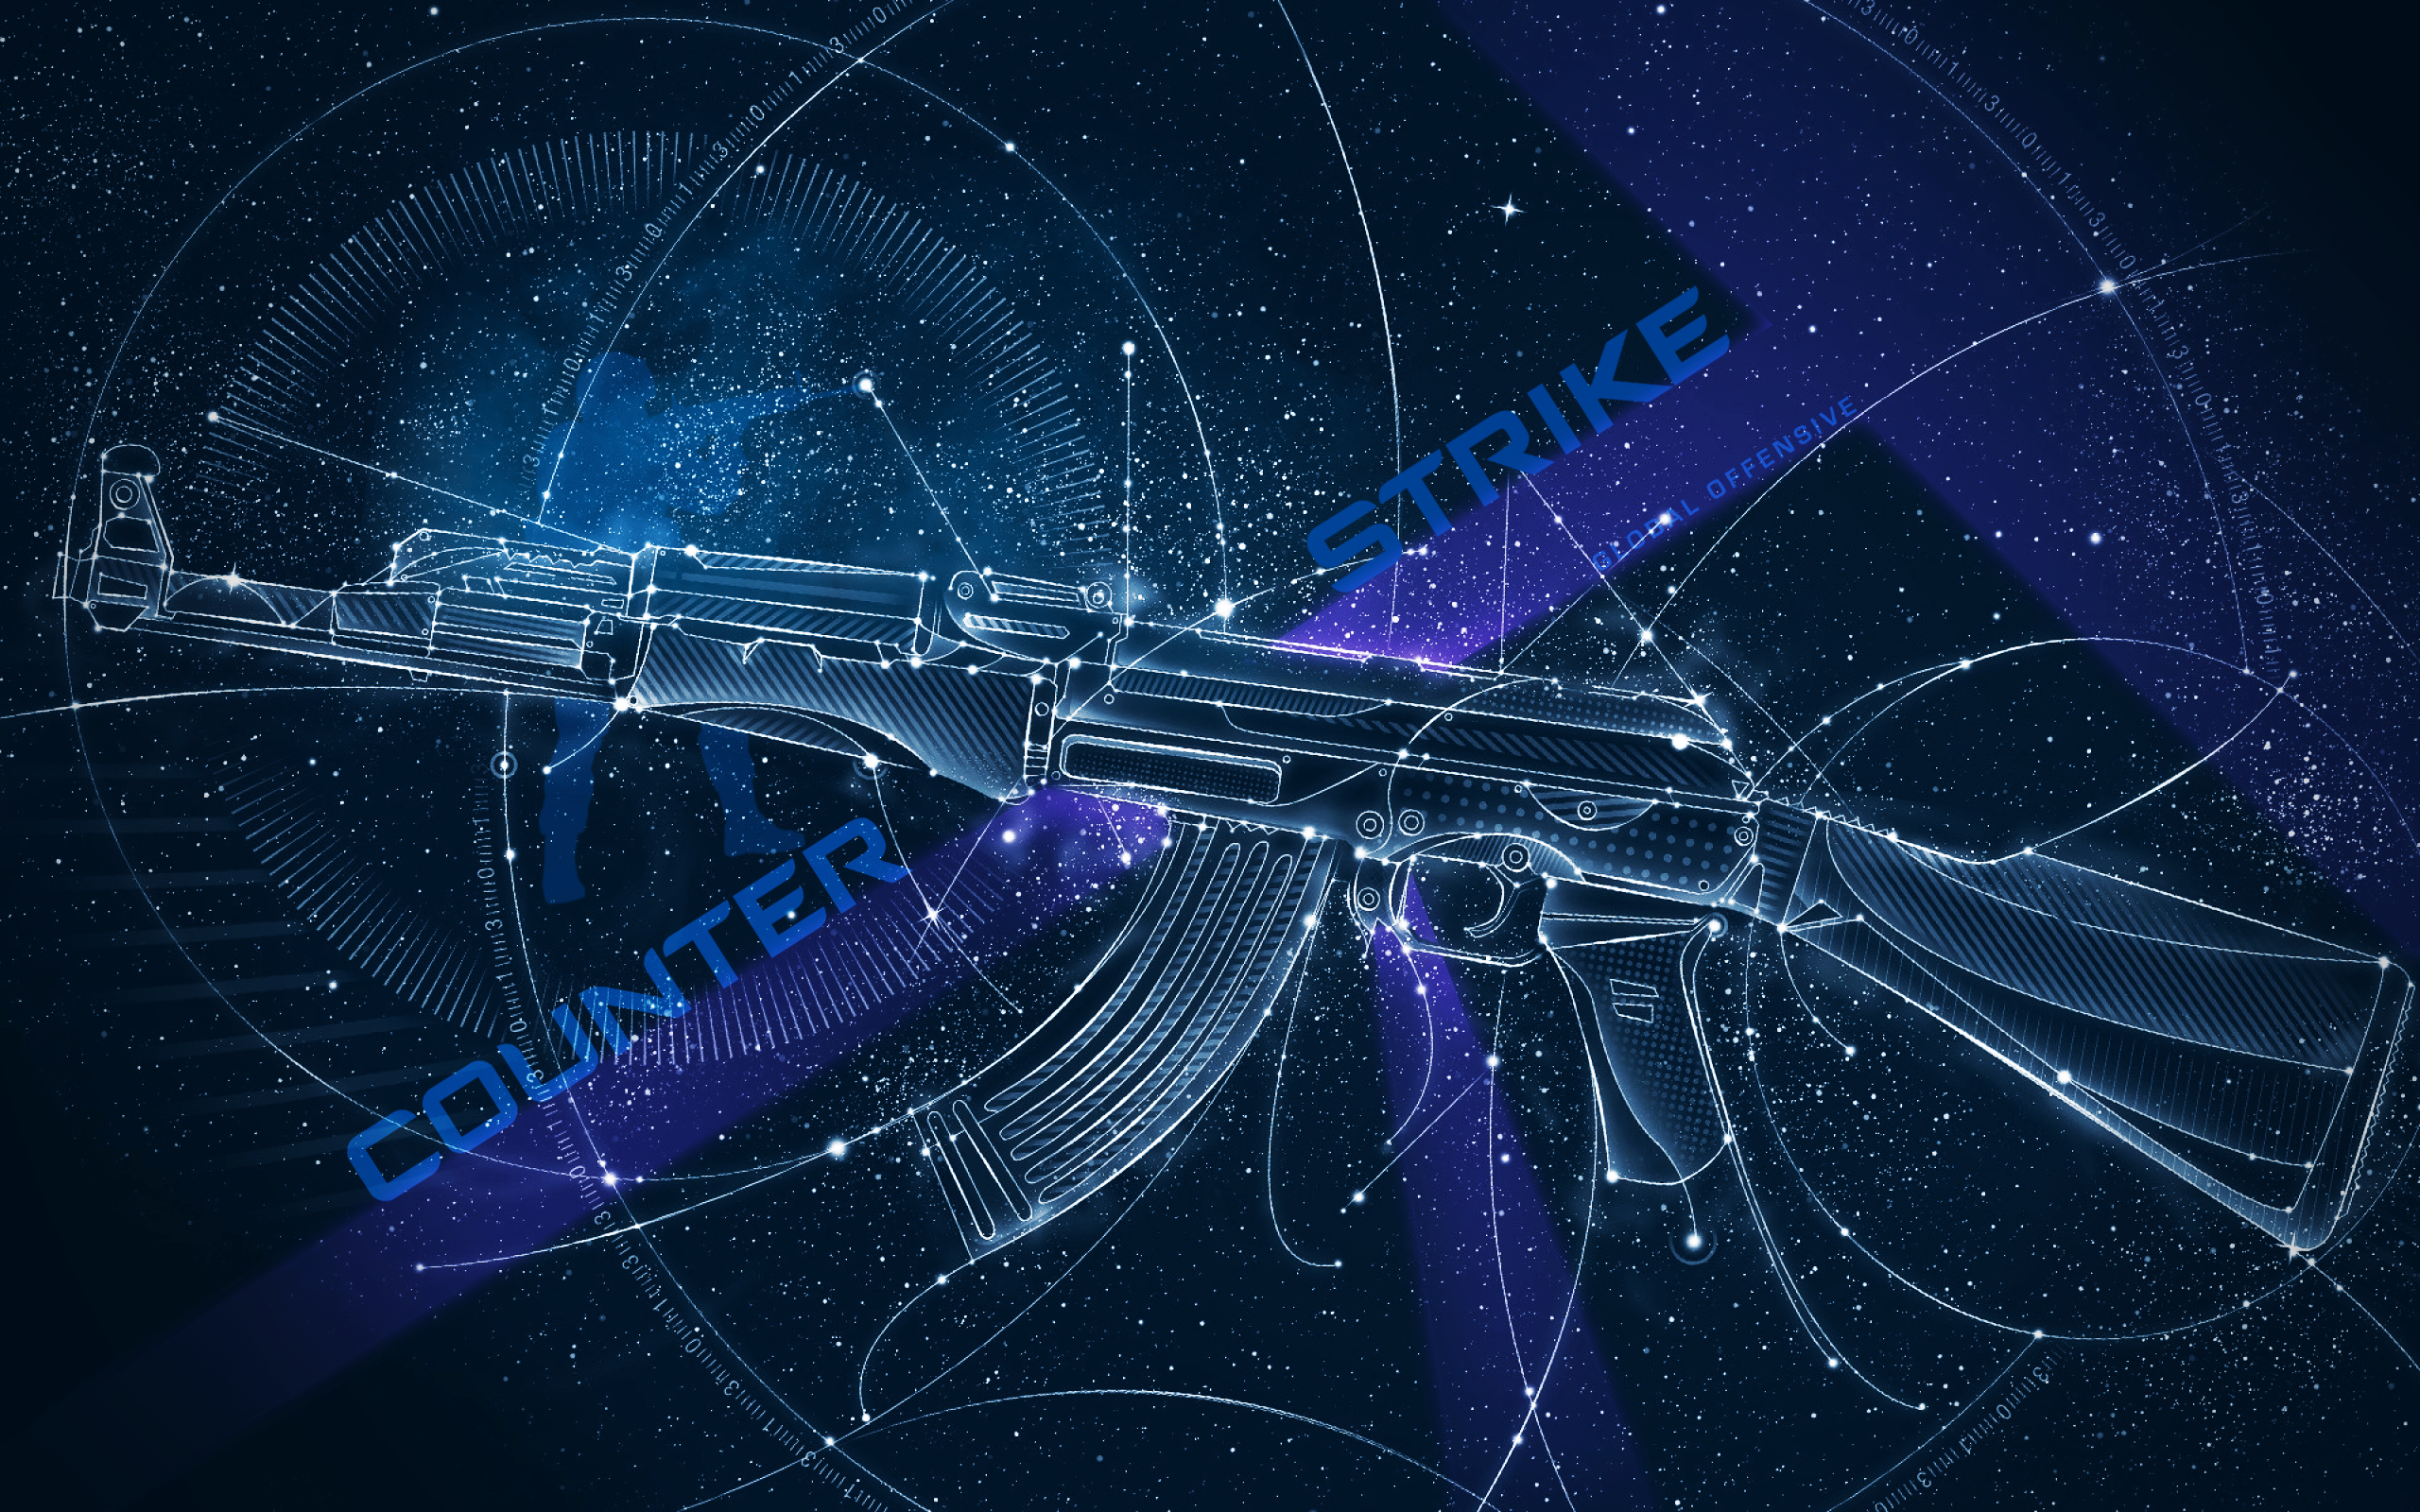 CSGO AK47 DR34M STEAM by ixZtkpID 2560x1600